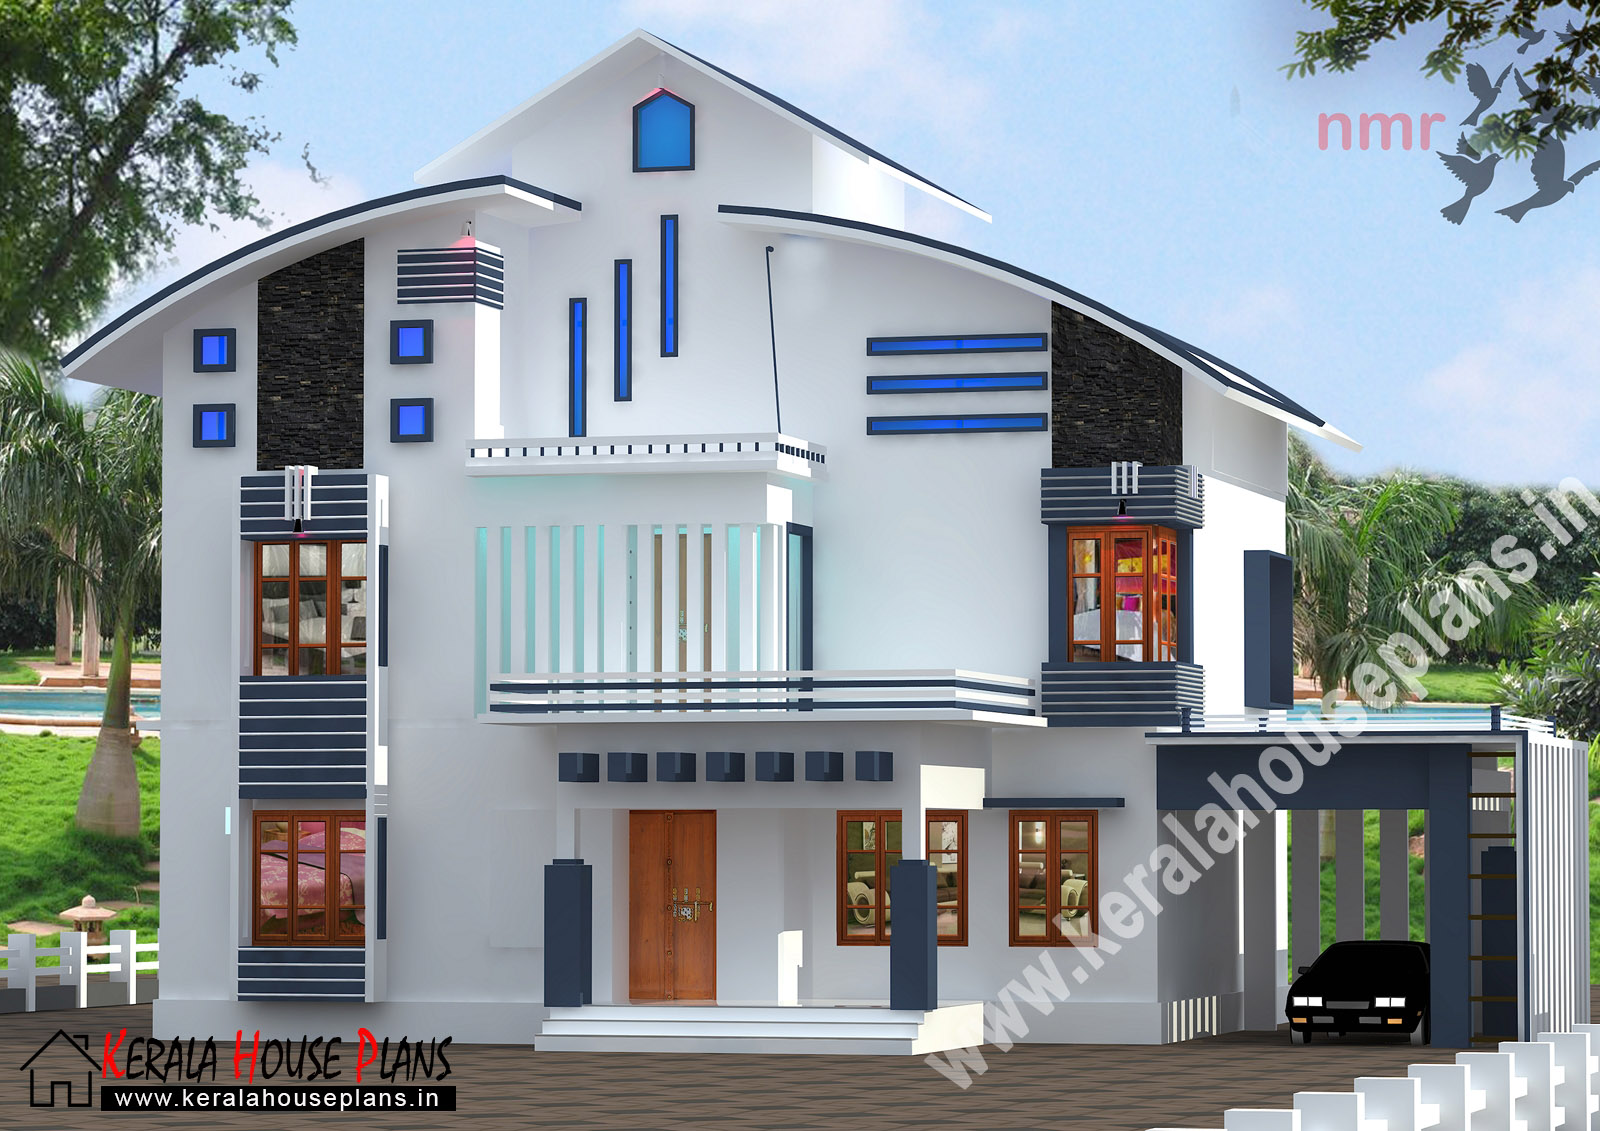 New kerala house plans for Kerala new model house plan